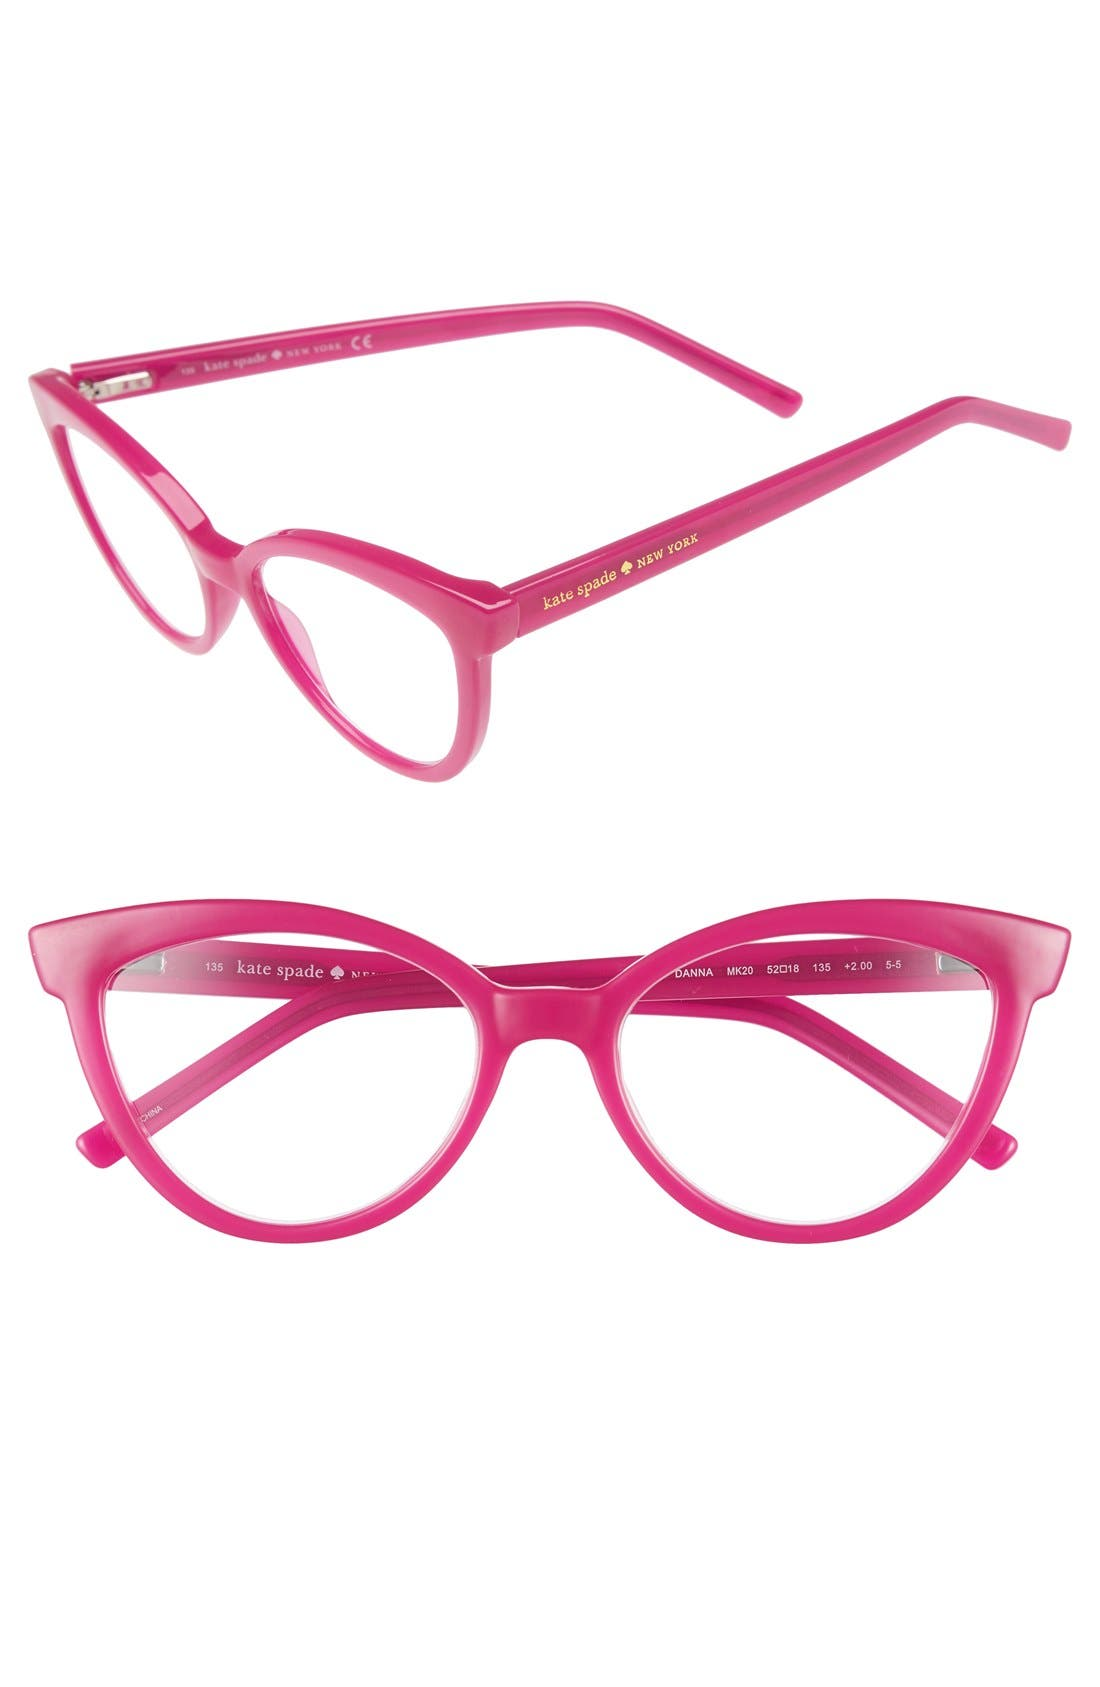 kate spade new york 'danna' 52mm cat eye reading glasses (2 for $88)